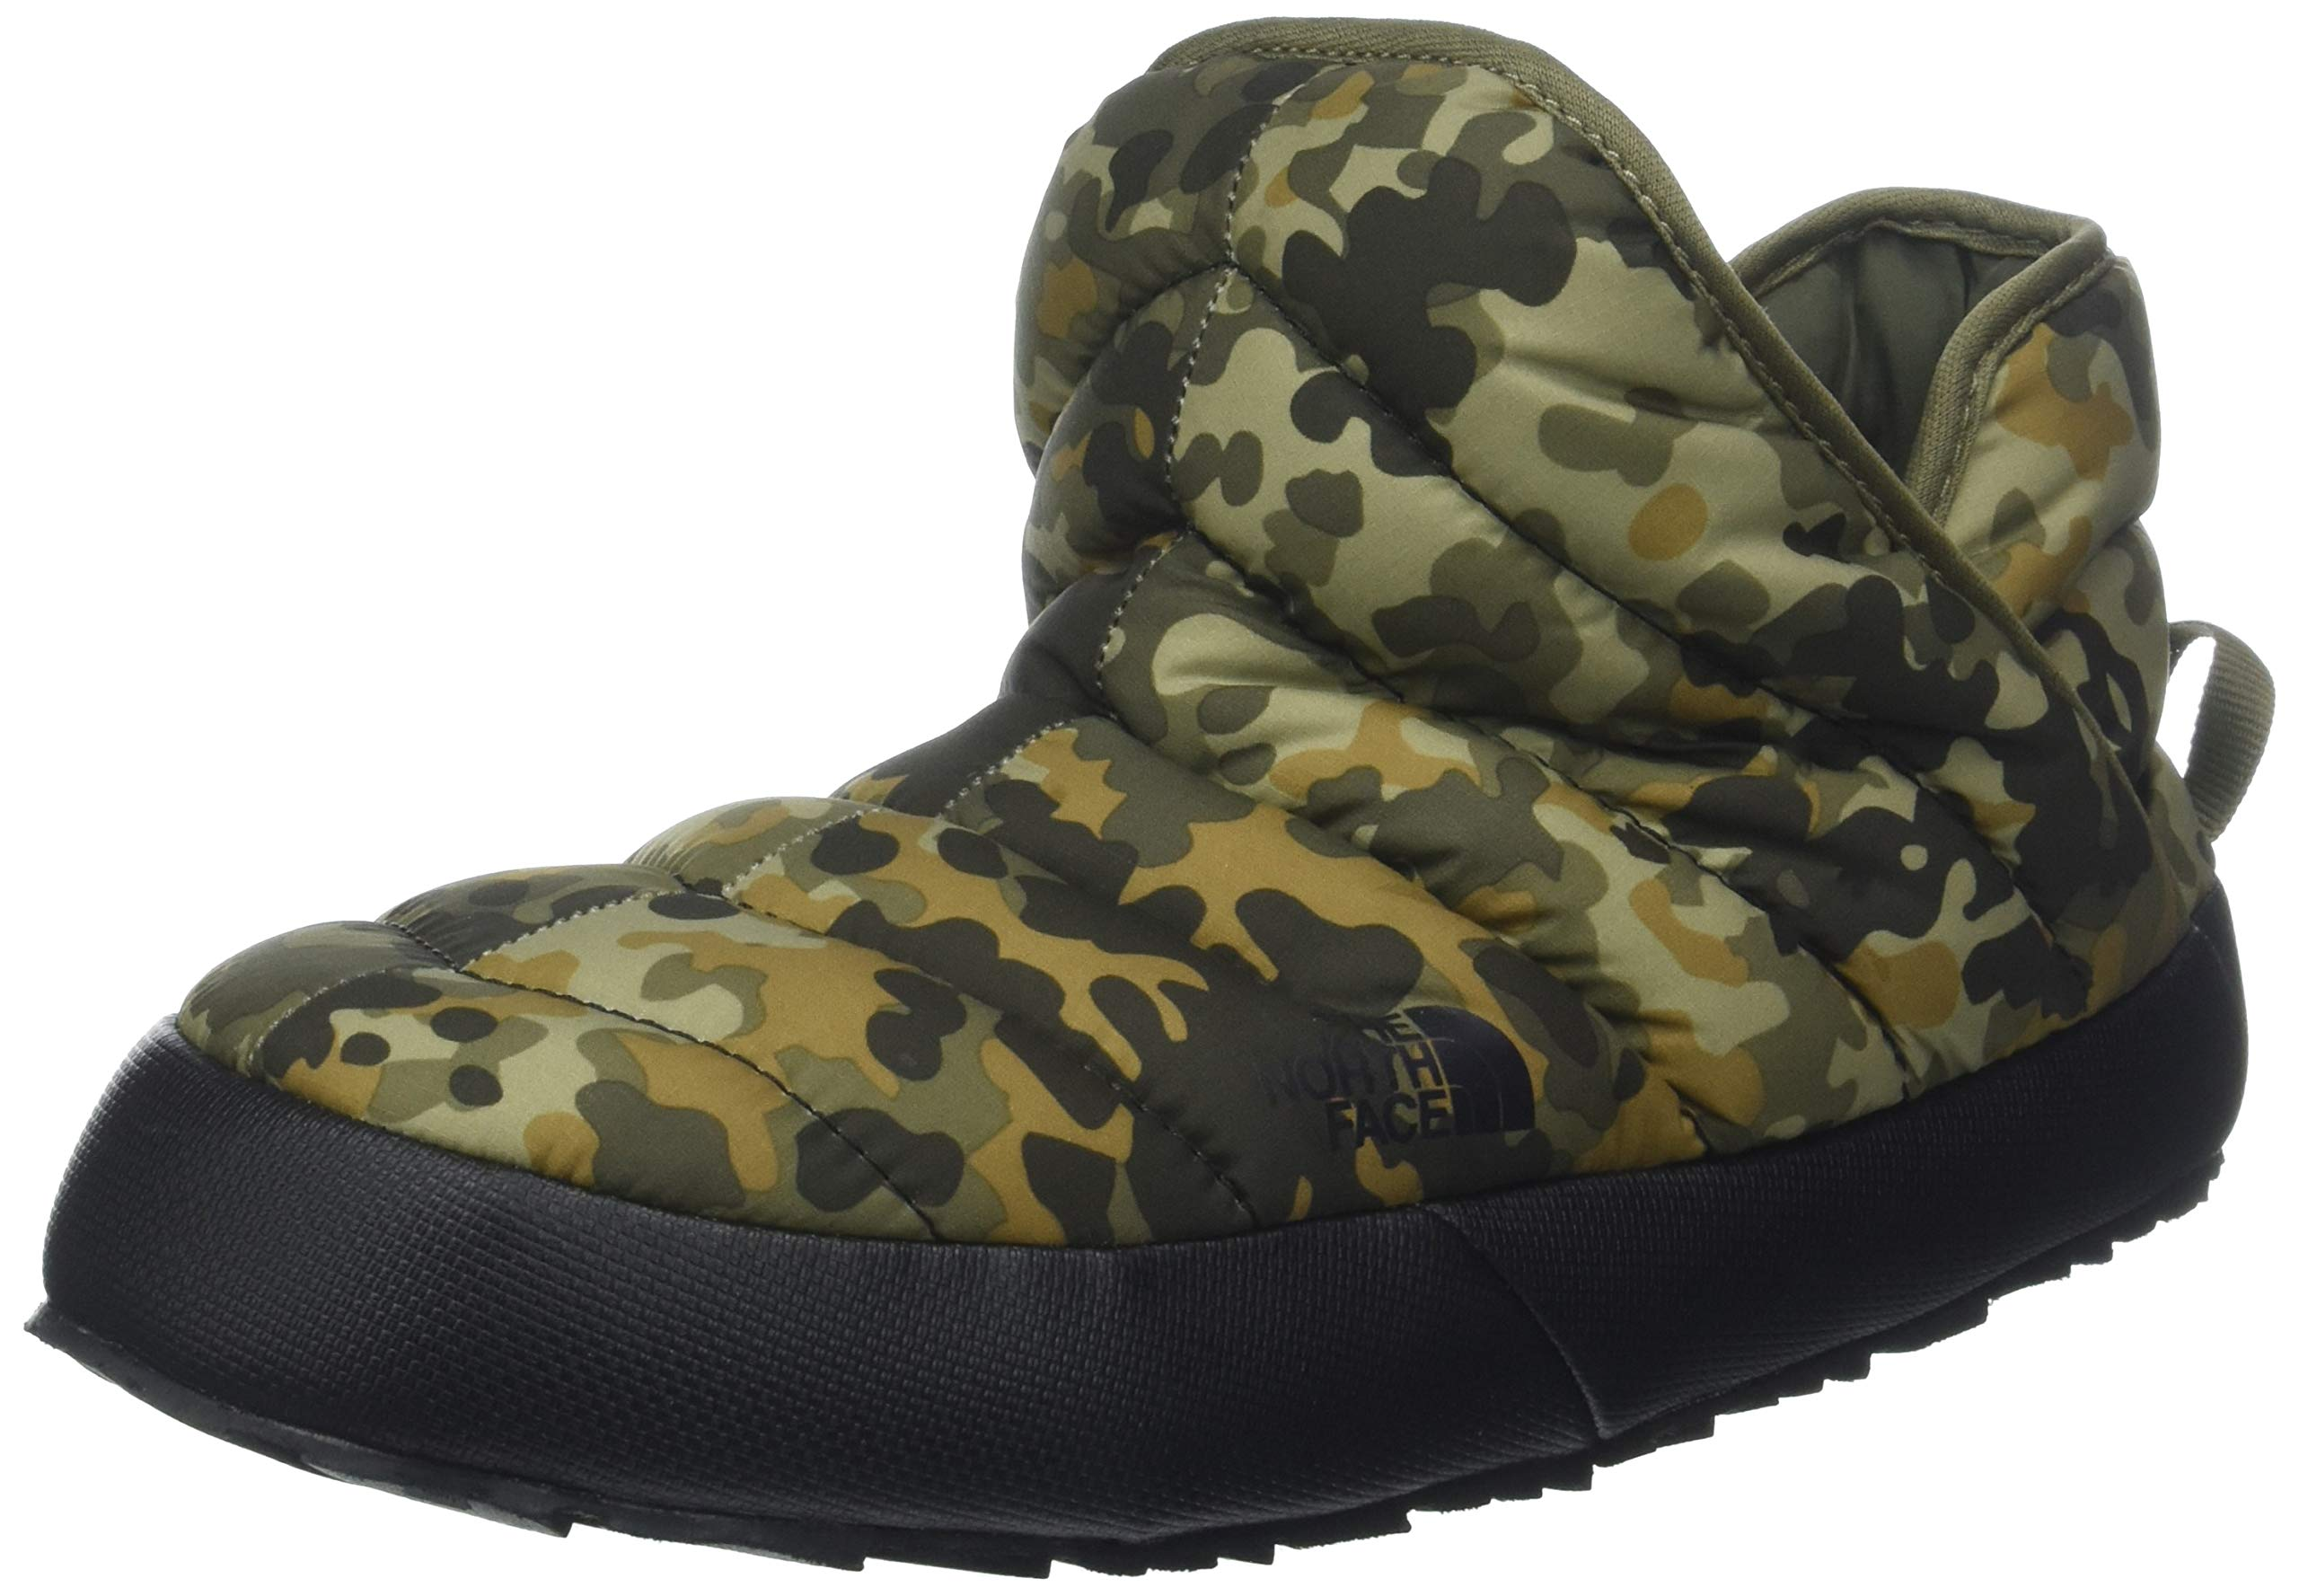 Eu TractionBottes Neige North Face tumbleweed 5qu39 The Green De HommeVerttarmac Macrofleck Thermoball Print tsrhQd